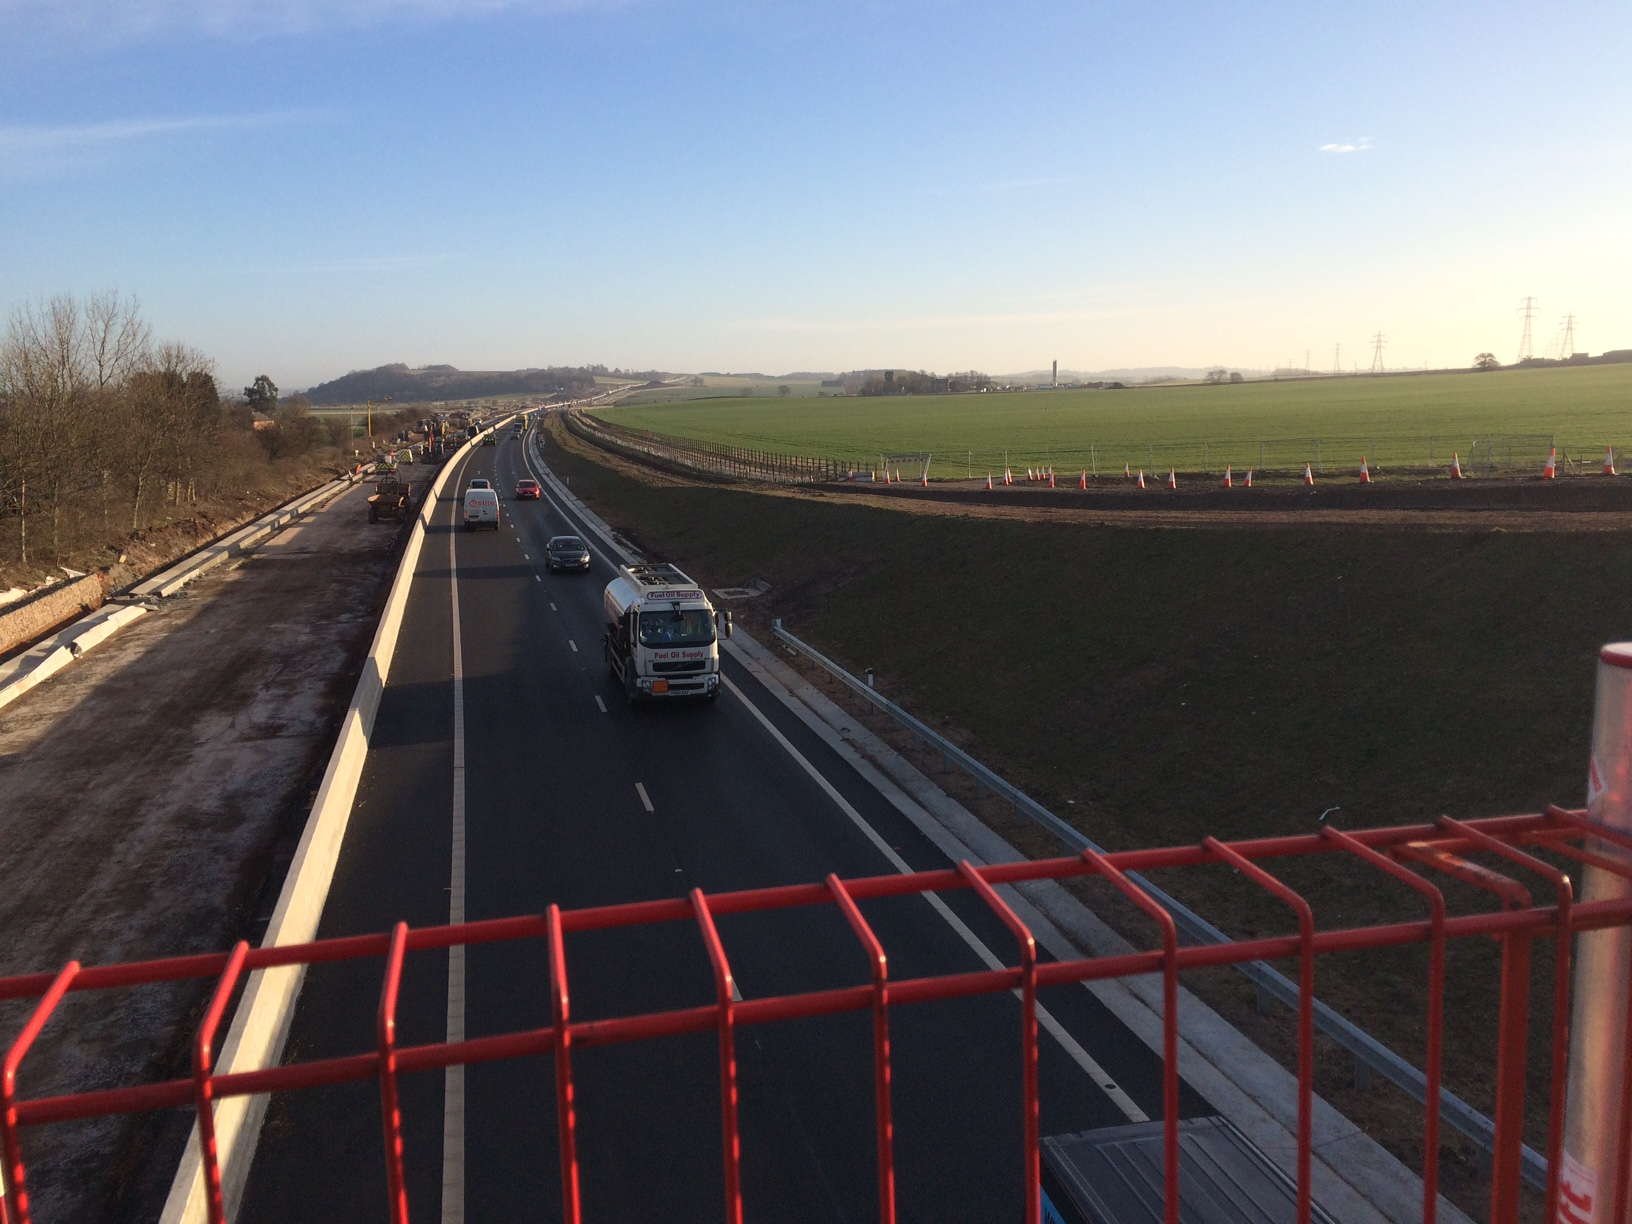 A453 is now Remembrance Way